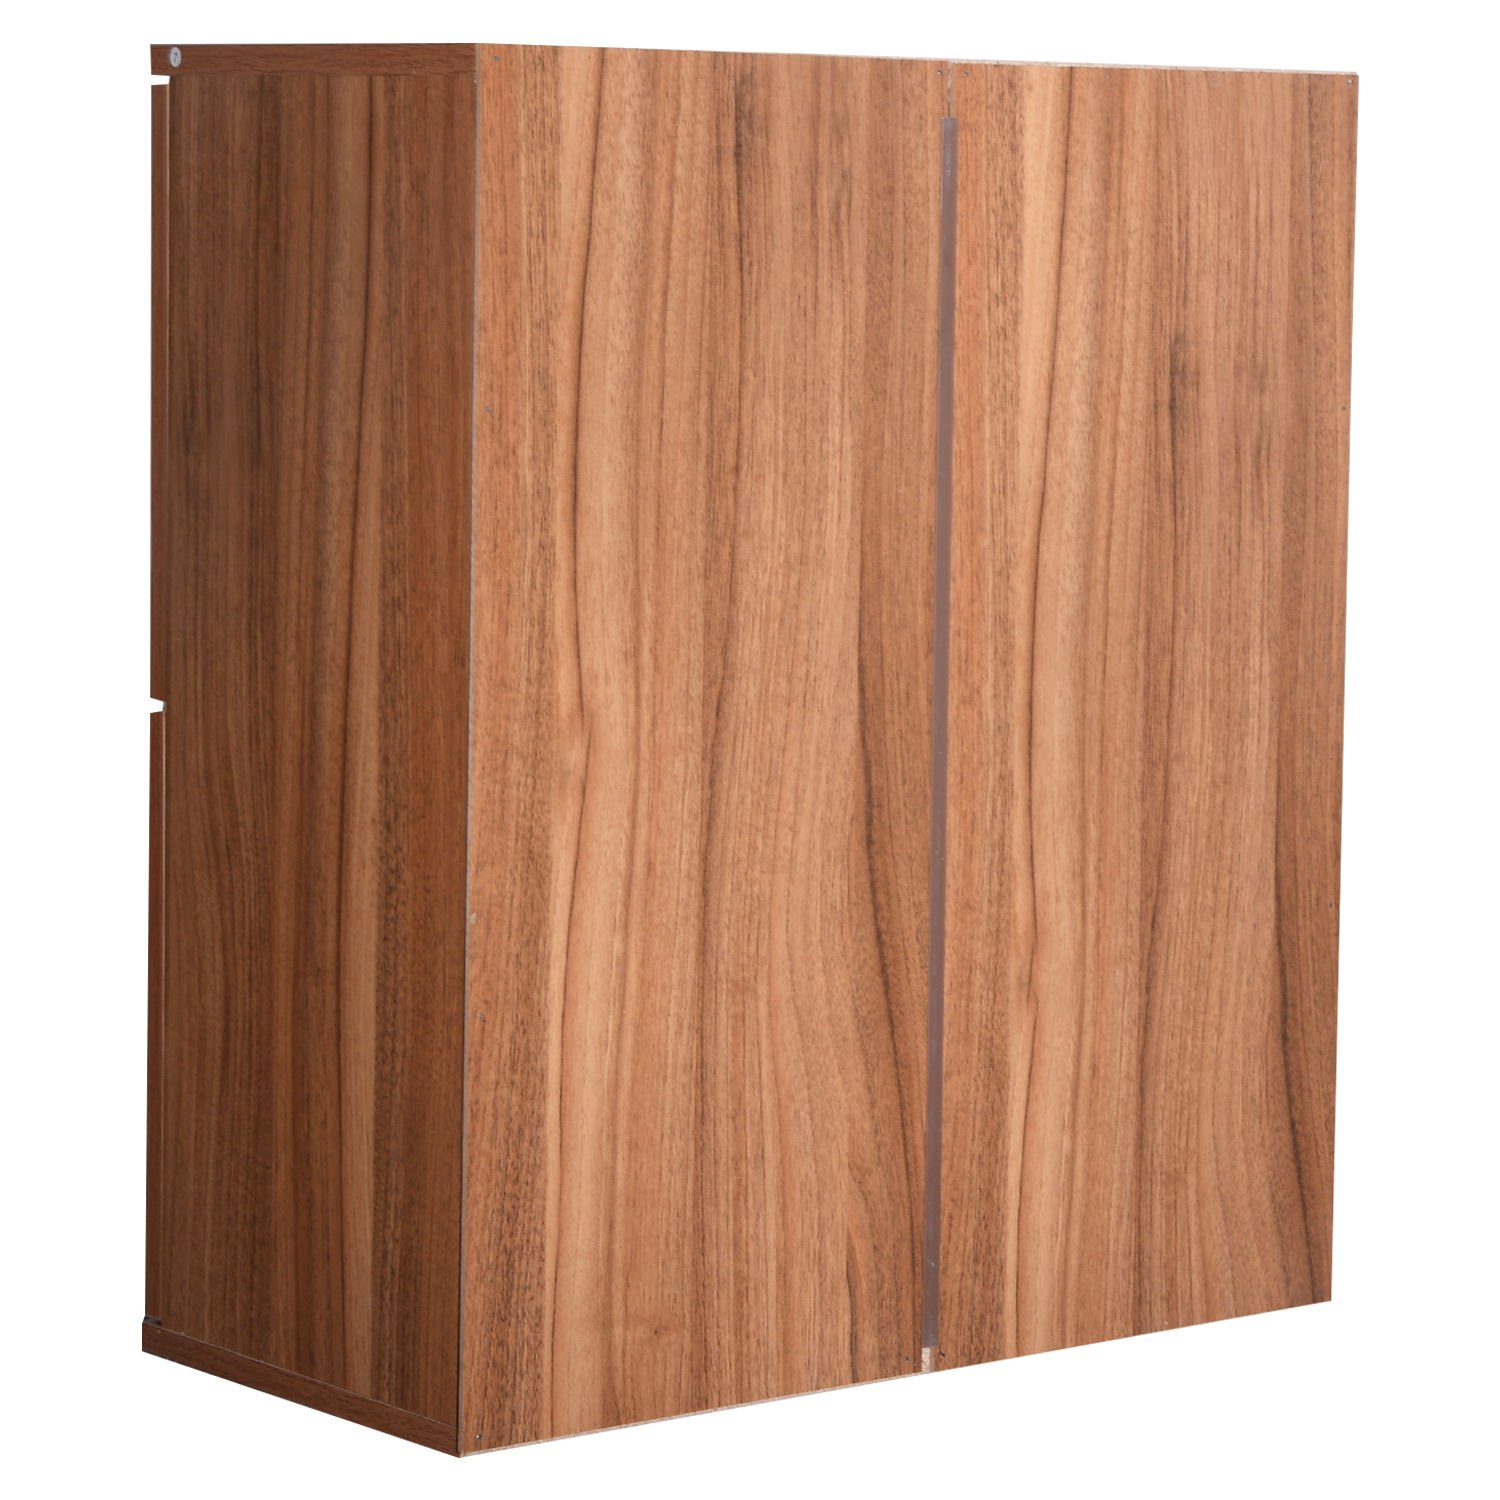 Cirocco 2 Drawer Chest Wood – Nightstand Storage Organizer Cabinet   Modern Contemporary Non Toxic Space Saving Furniture Dresser   Heavy Duty Durable for Bedroom Living Room Home Indoor Gadgets by Cirocco (Image #7)